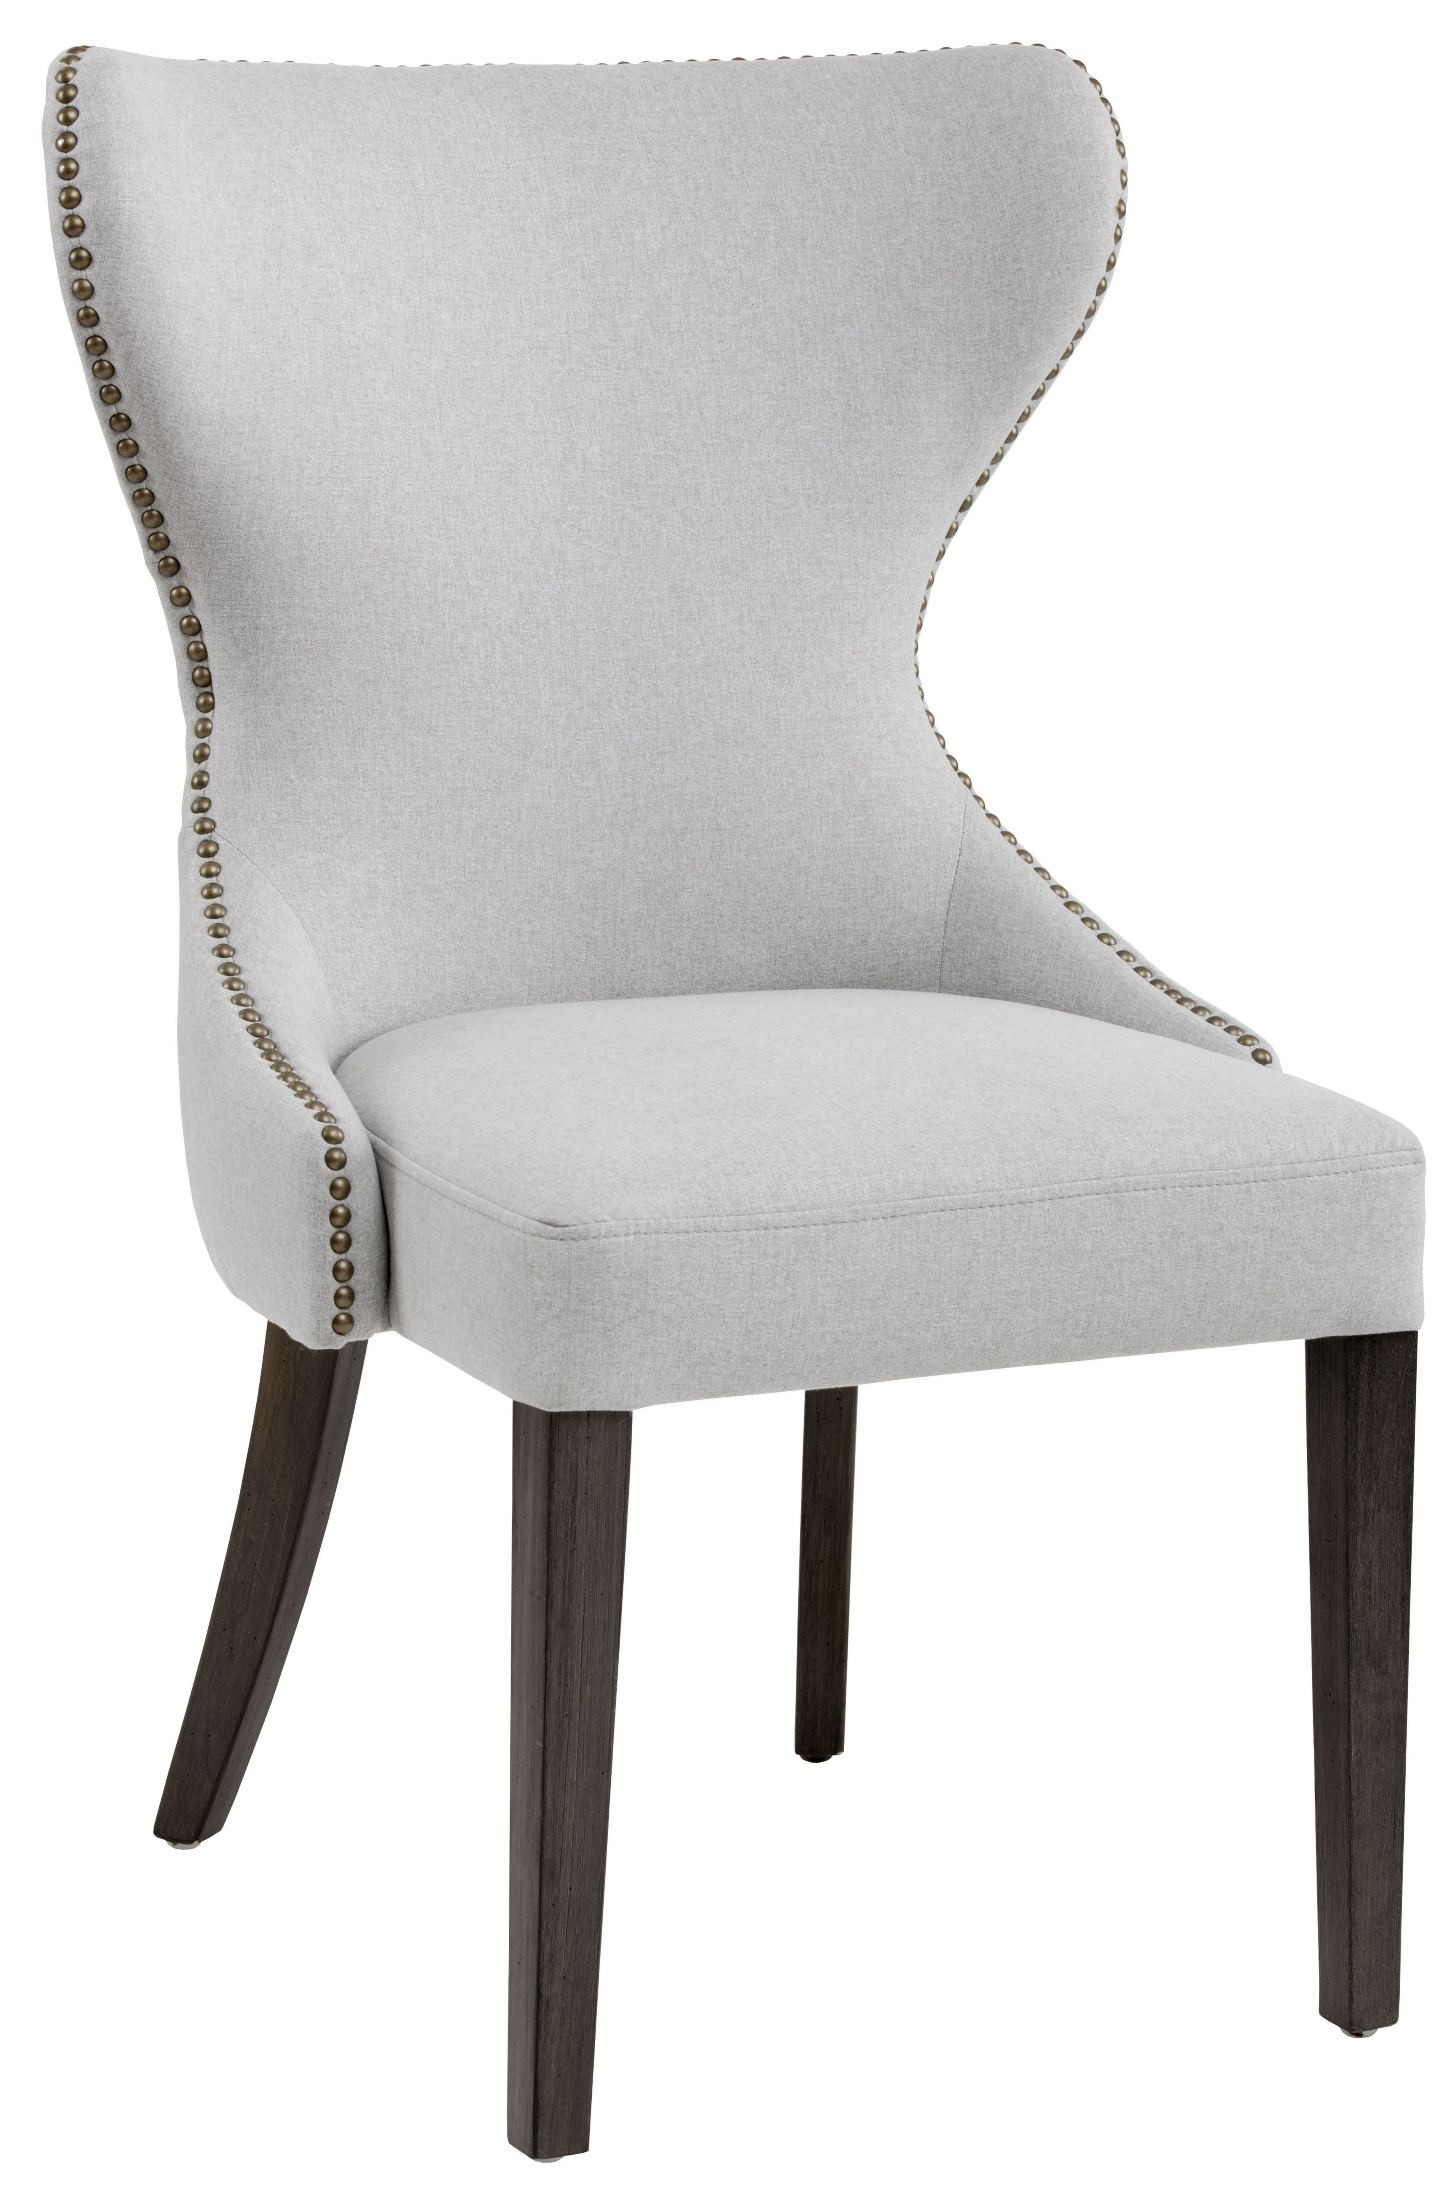 Living Room Chairs likewise Exec2 likewise Heracleum Ii in addition Modern Eco Friendly House Plans With Pool moreover Mh370. on dining chair back styles